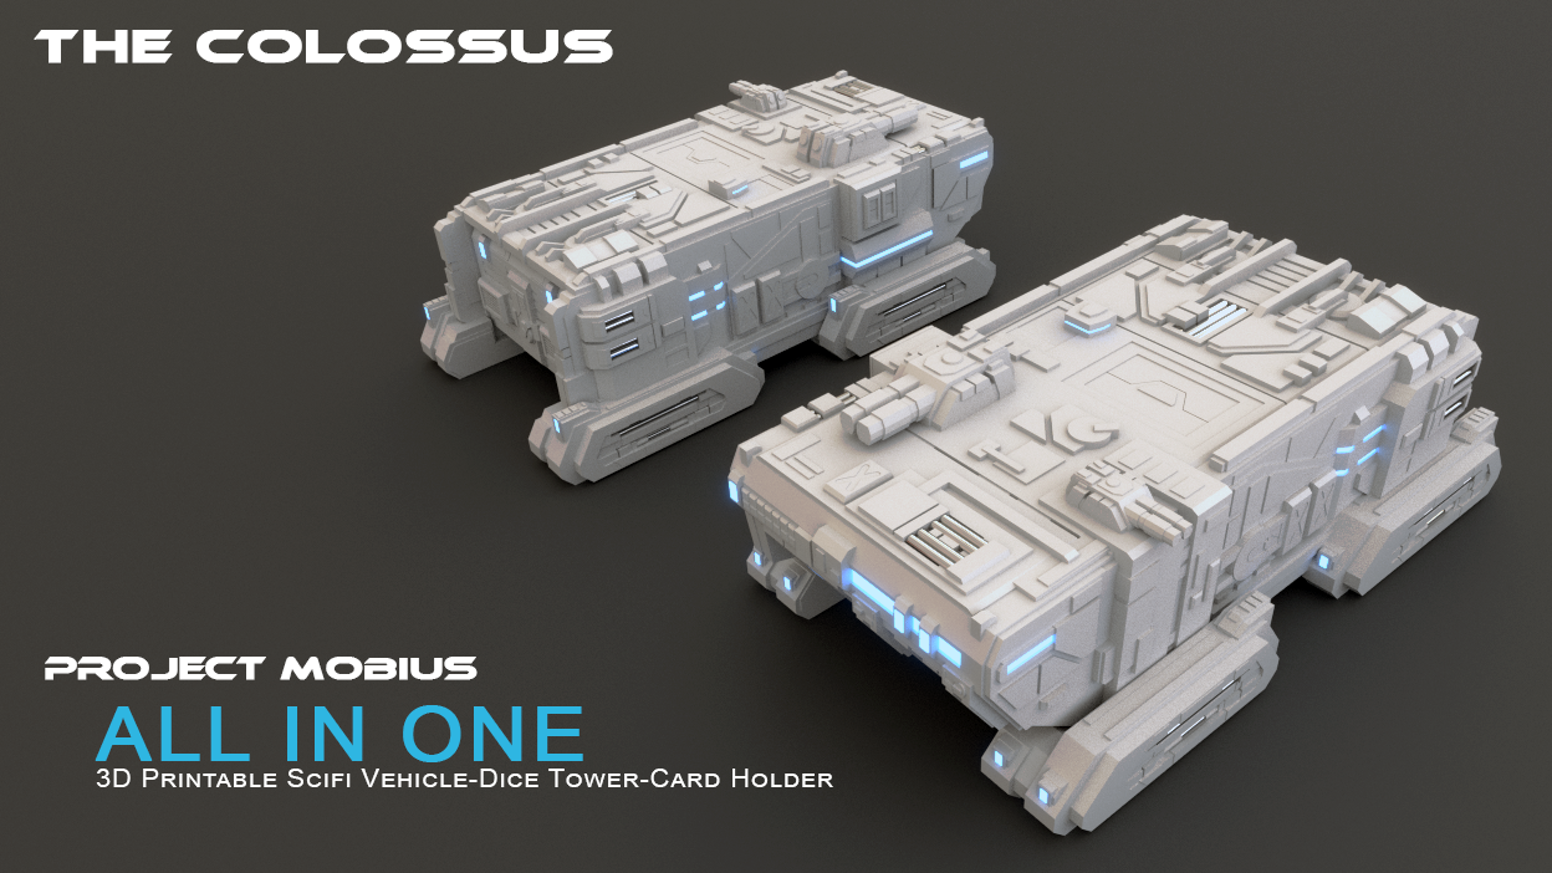 3D Printable Scifi Vehicle-Dice Tower-Card Holder All In One